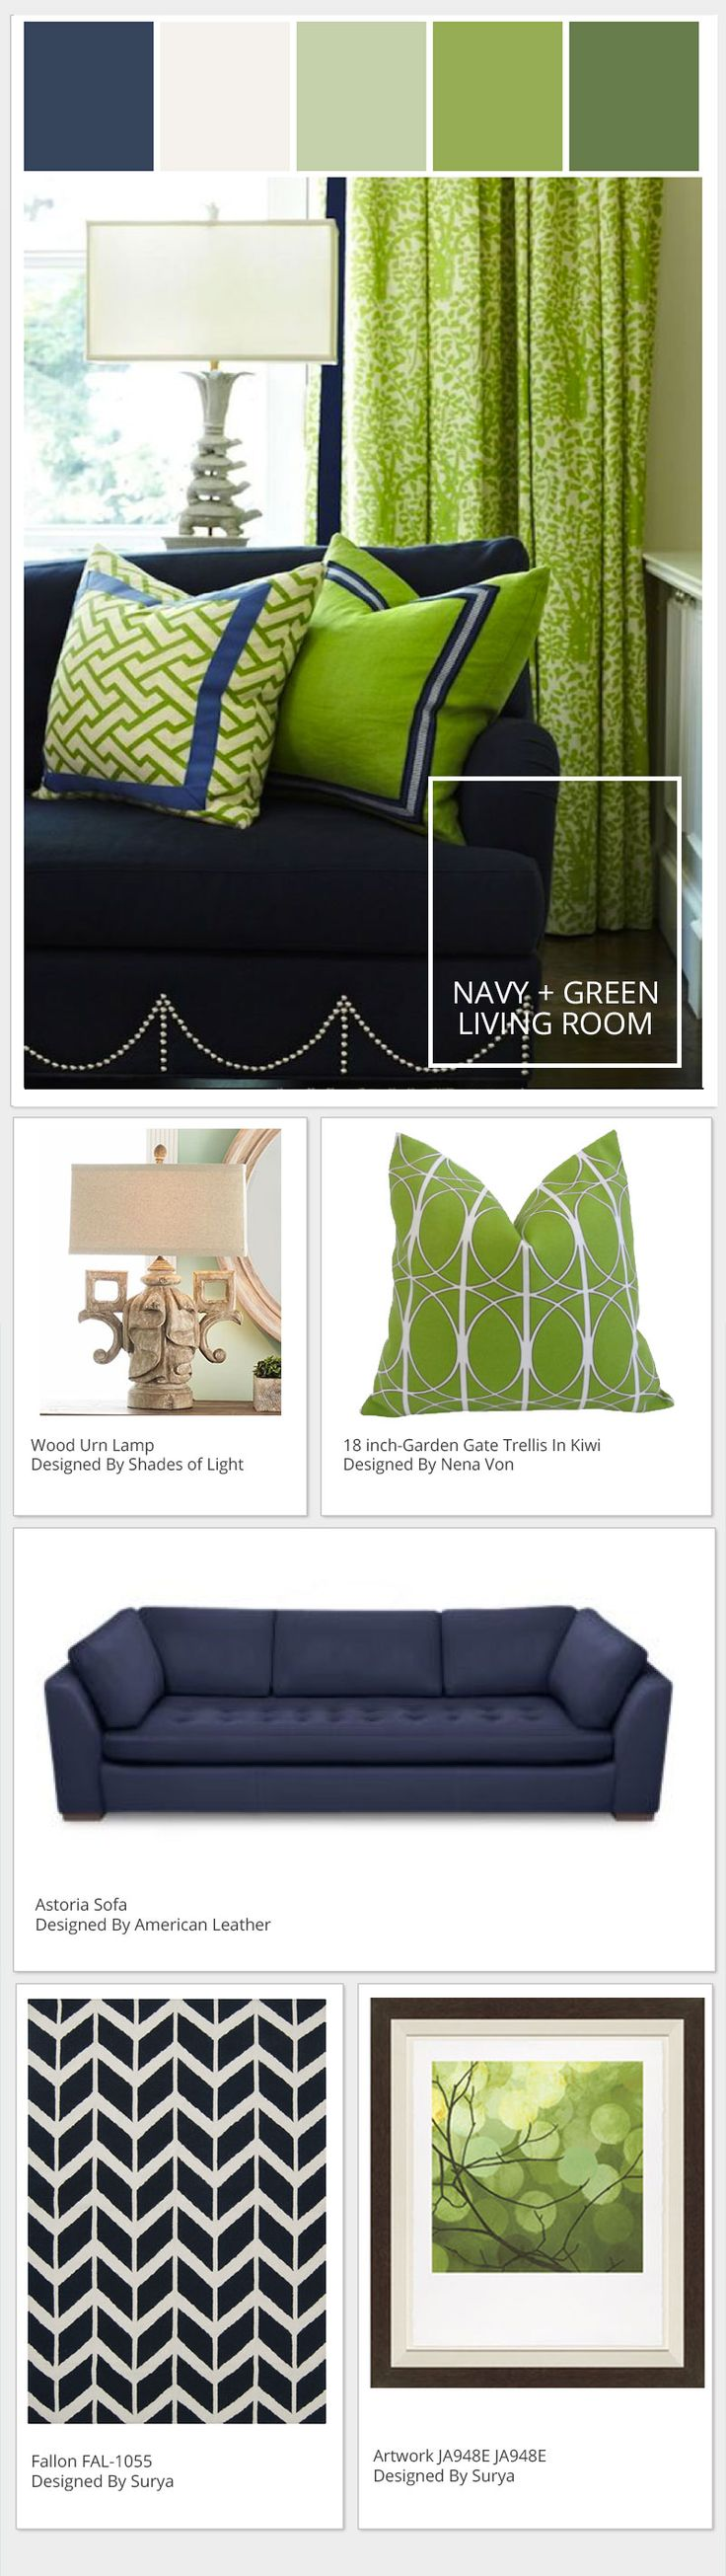 Motivation Monday | Seahawks Blue + Green Living Room - Stylyze